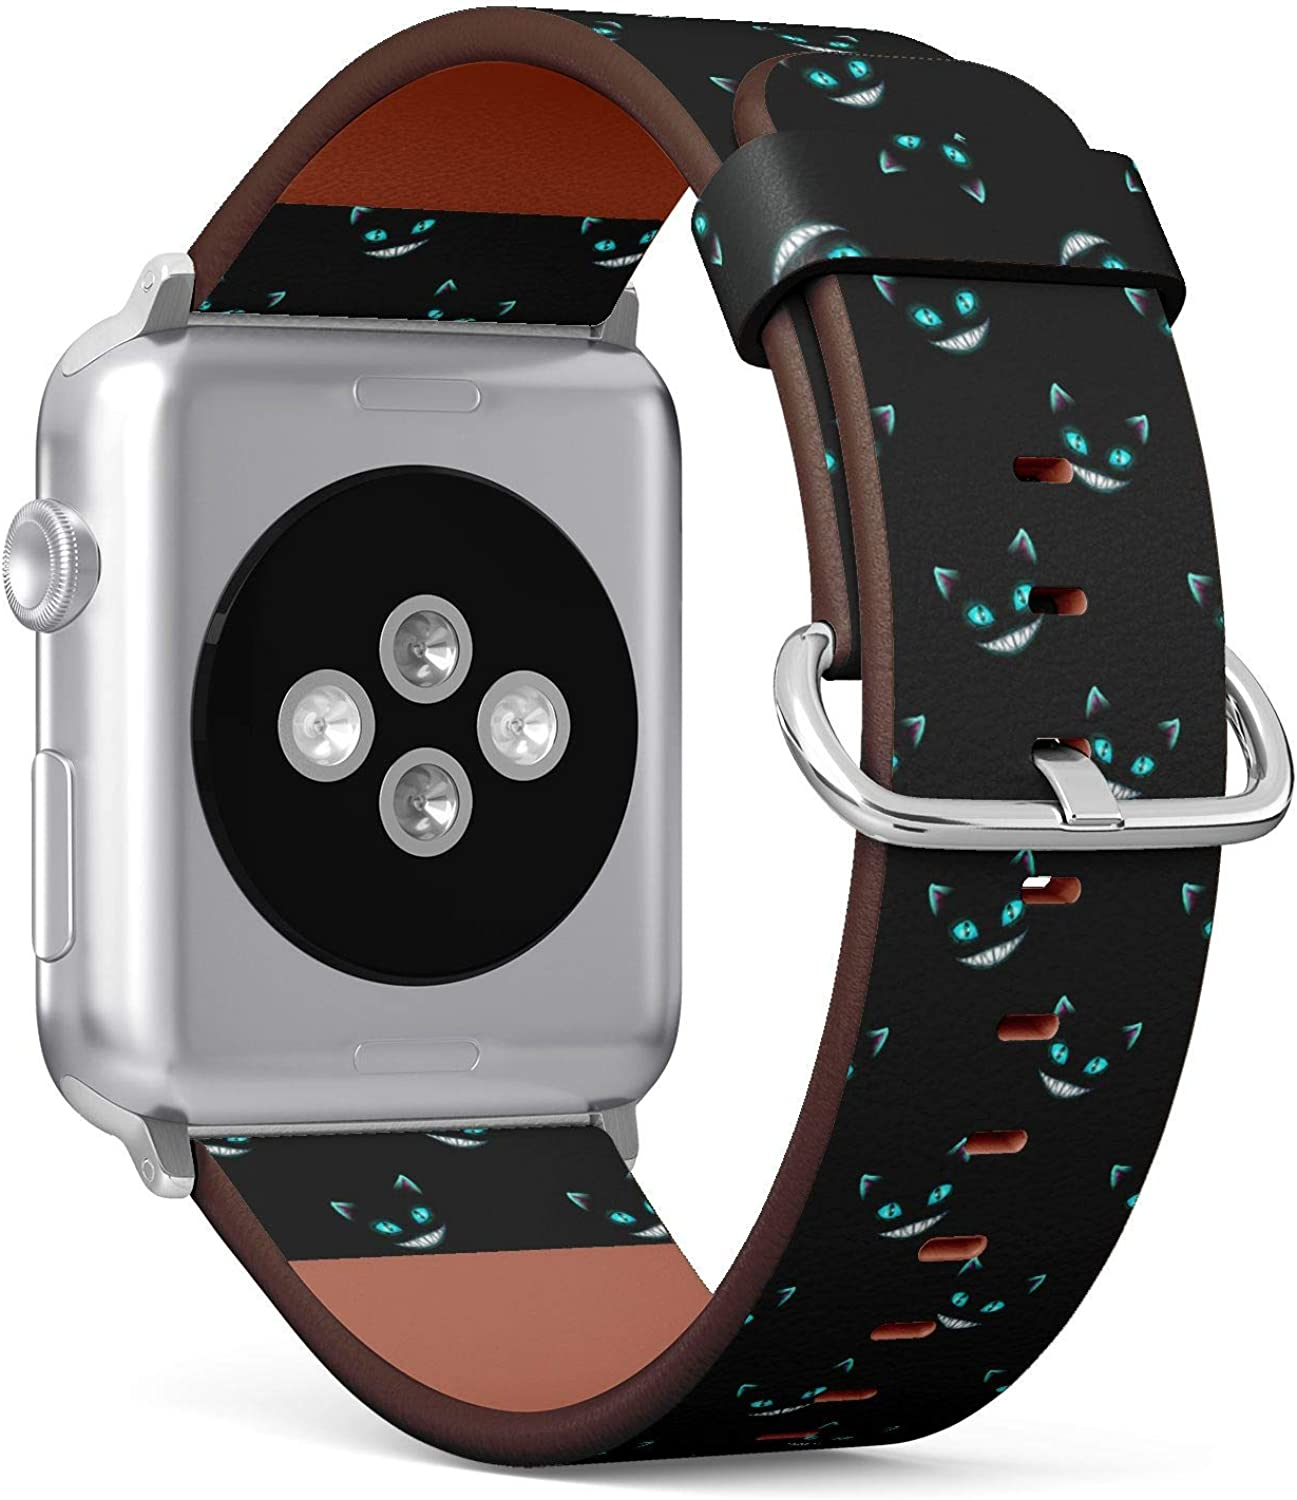 ( Disappearing Cheshire Cat faces on black background )Patterned Leather Wristband Strap for Apple Watch Series 4/3/2/1 gen ,Replacement for iWatch 38mm / 40mm bands